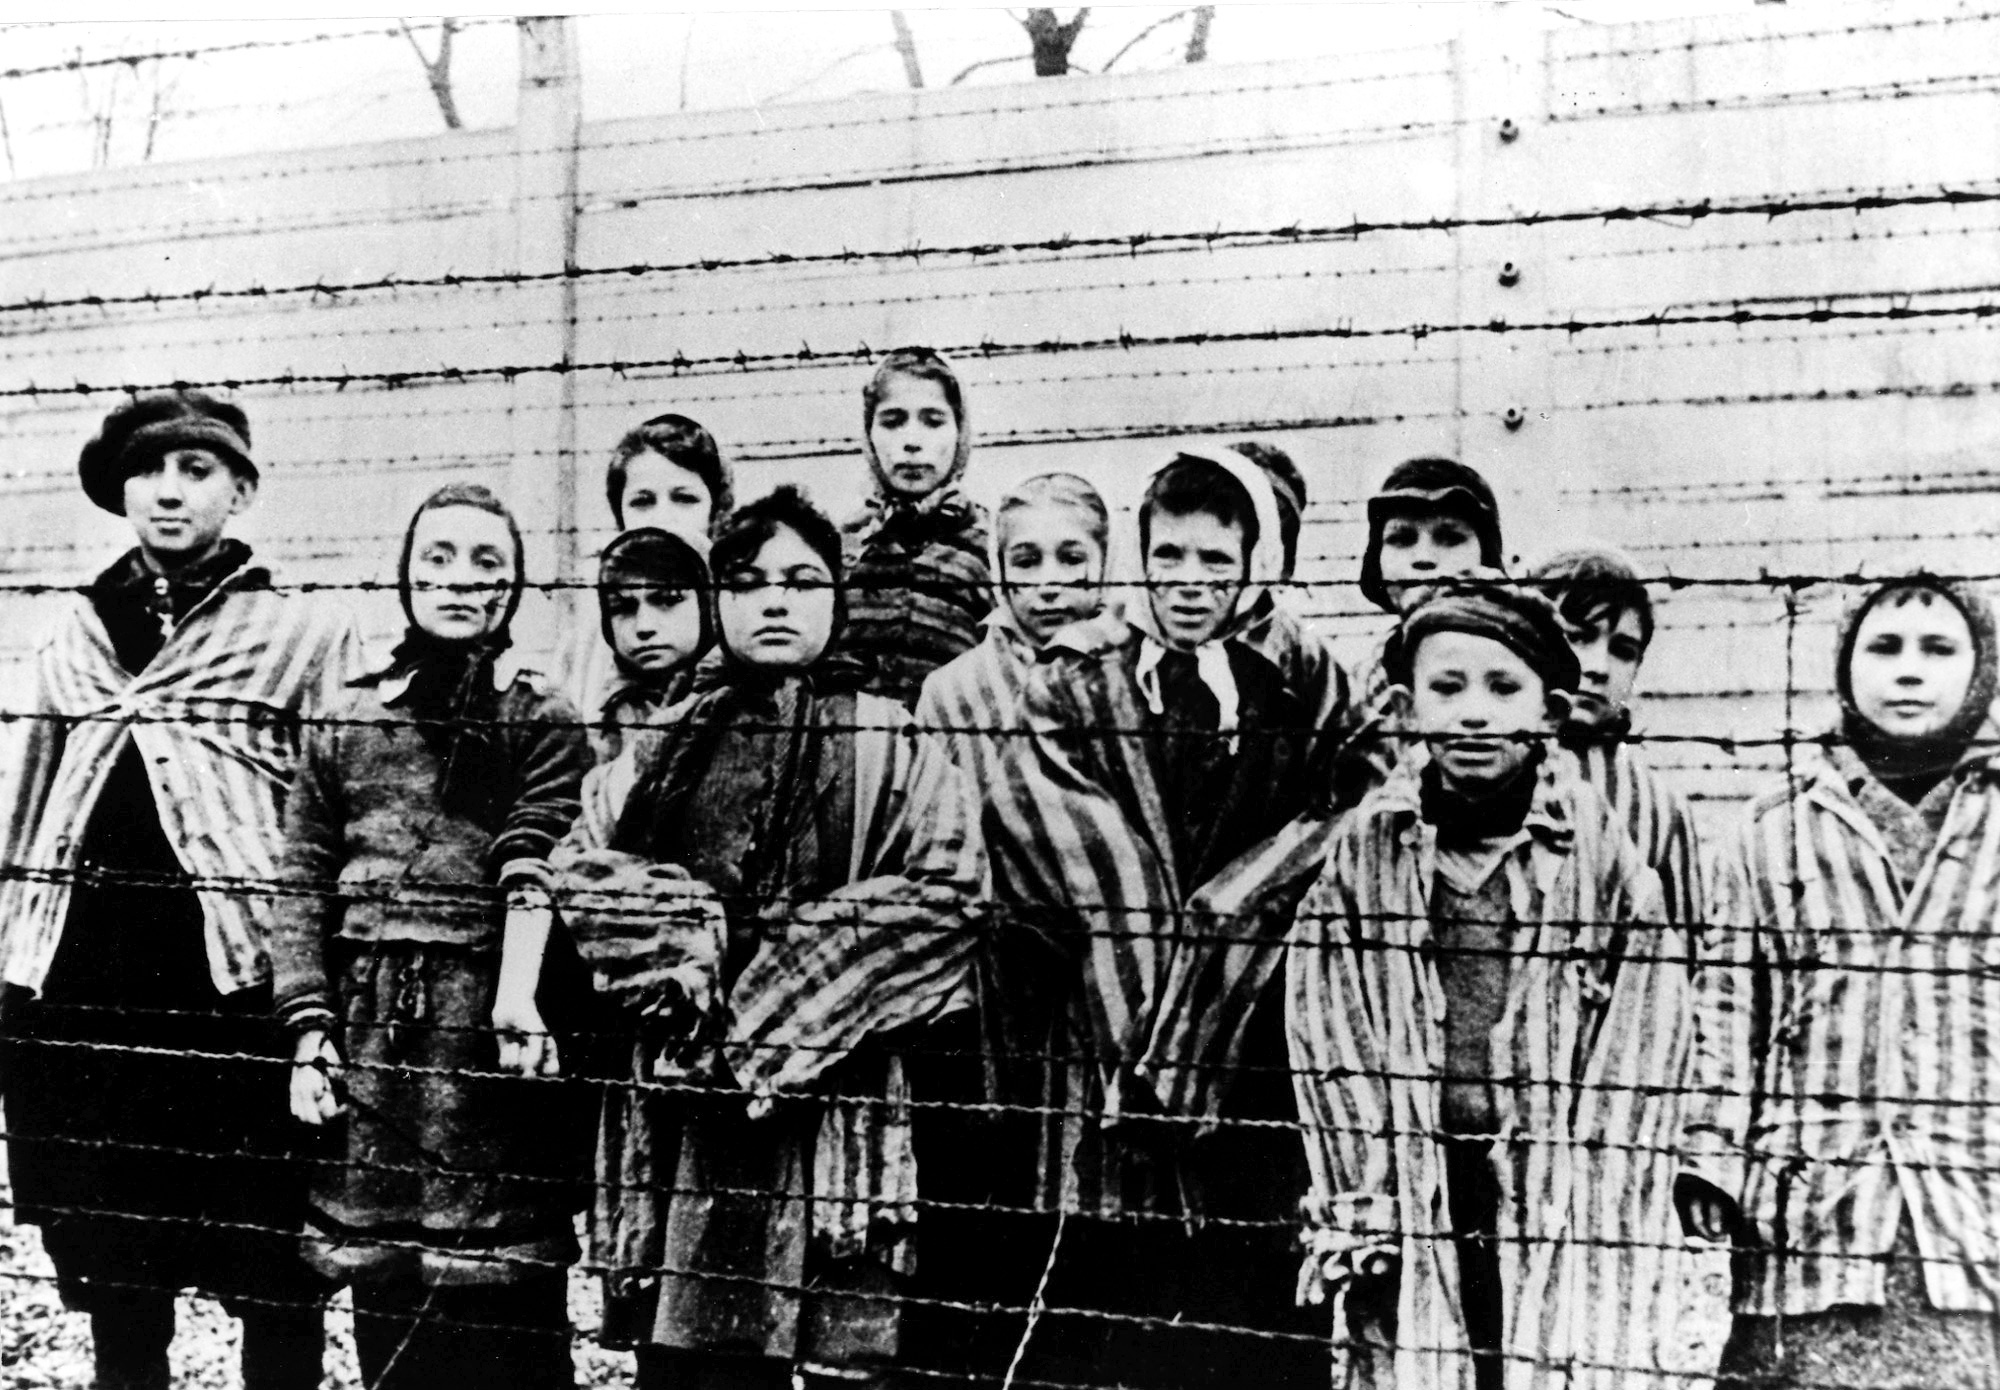 A picture taken just after the liberation by the Soviet army in January, 1945, shows a group of children wearing concentration camp uniforms, at the time behind barbed wire fencing in the Oswiecim (Auschwitz) Nazi concentration camp.